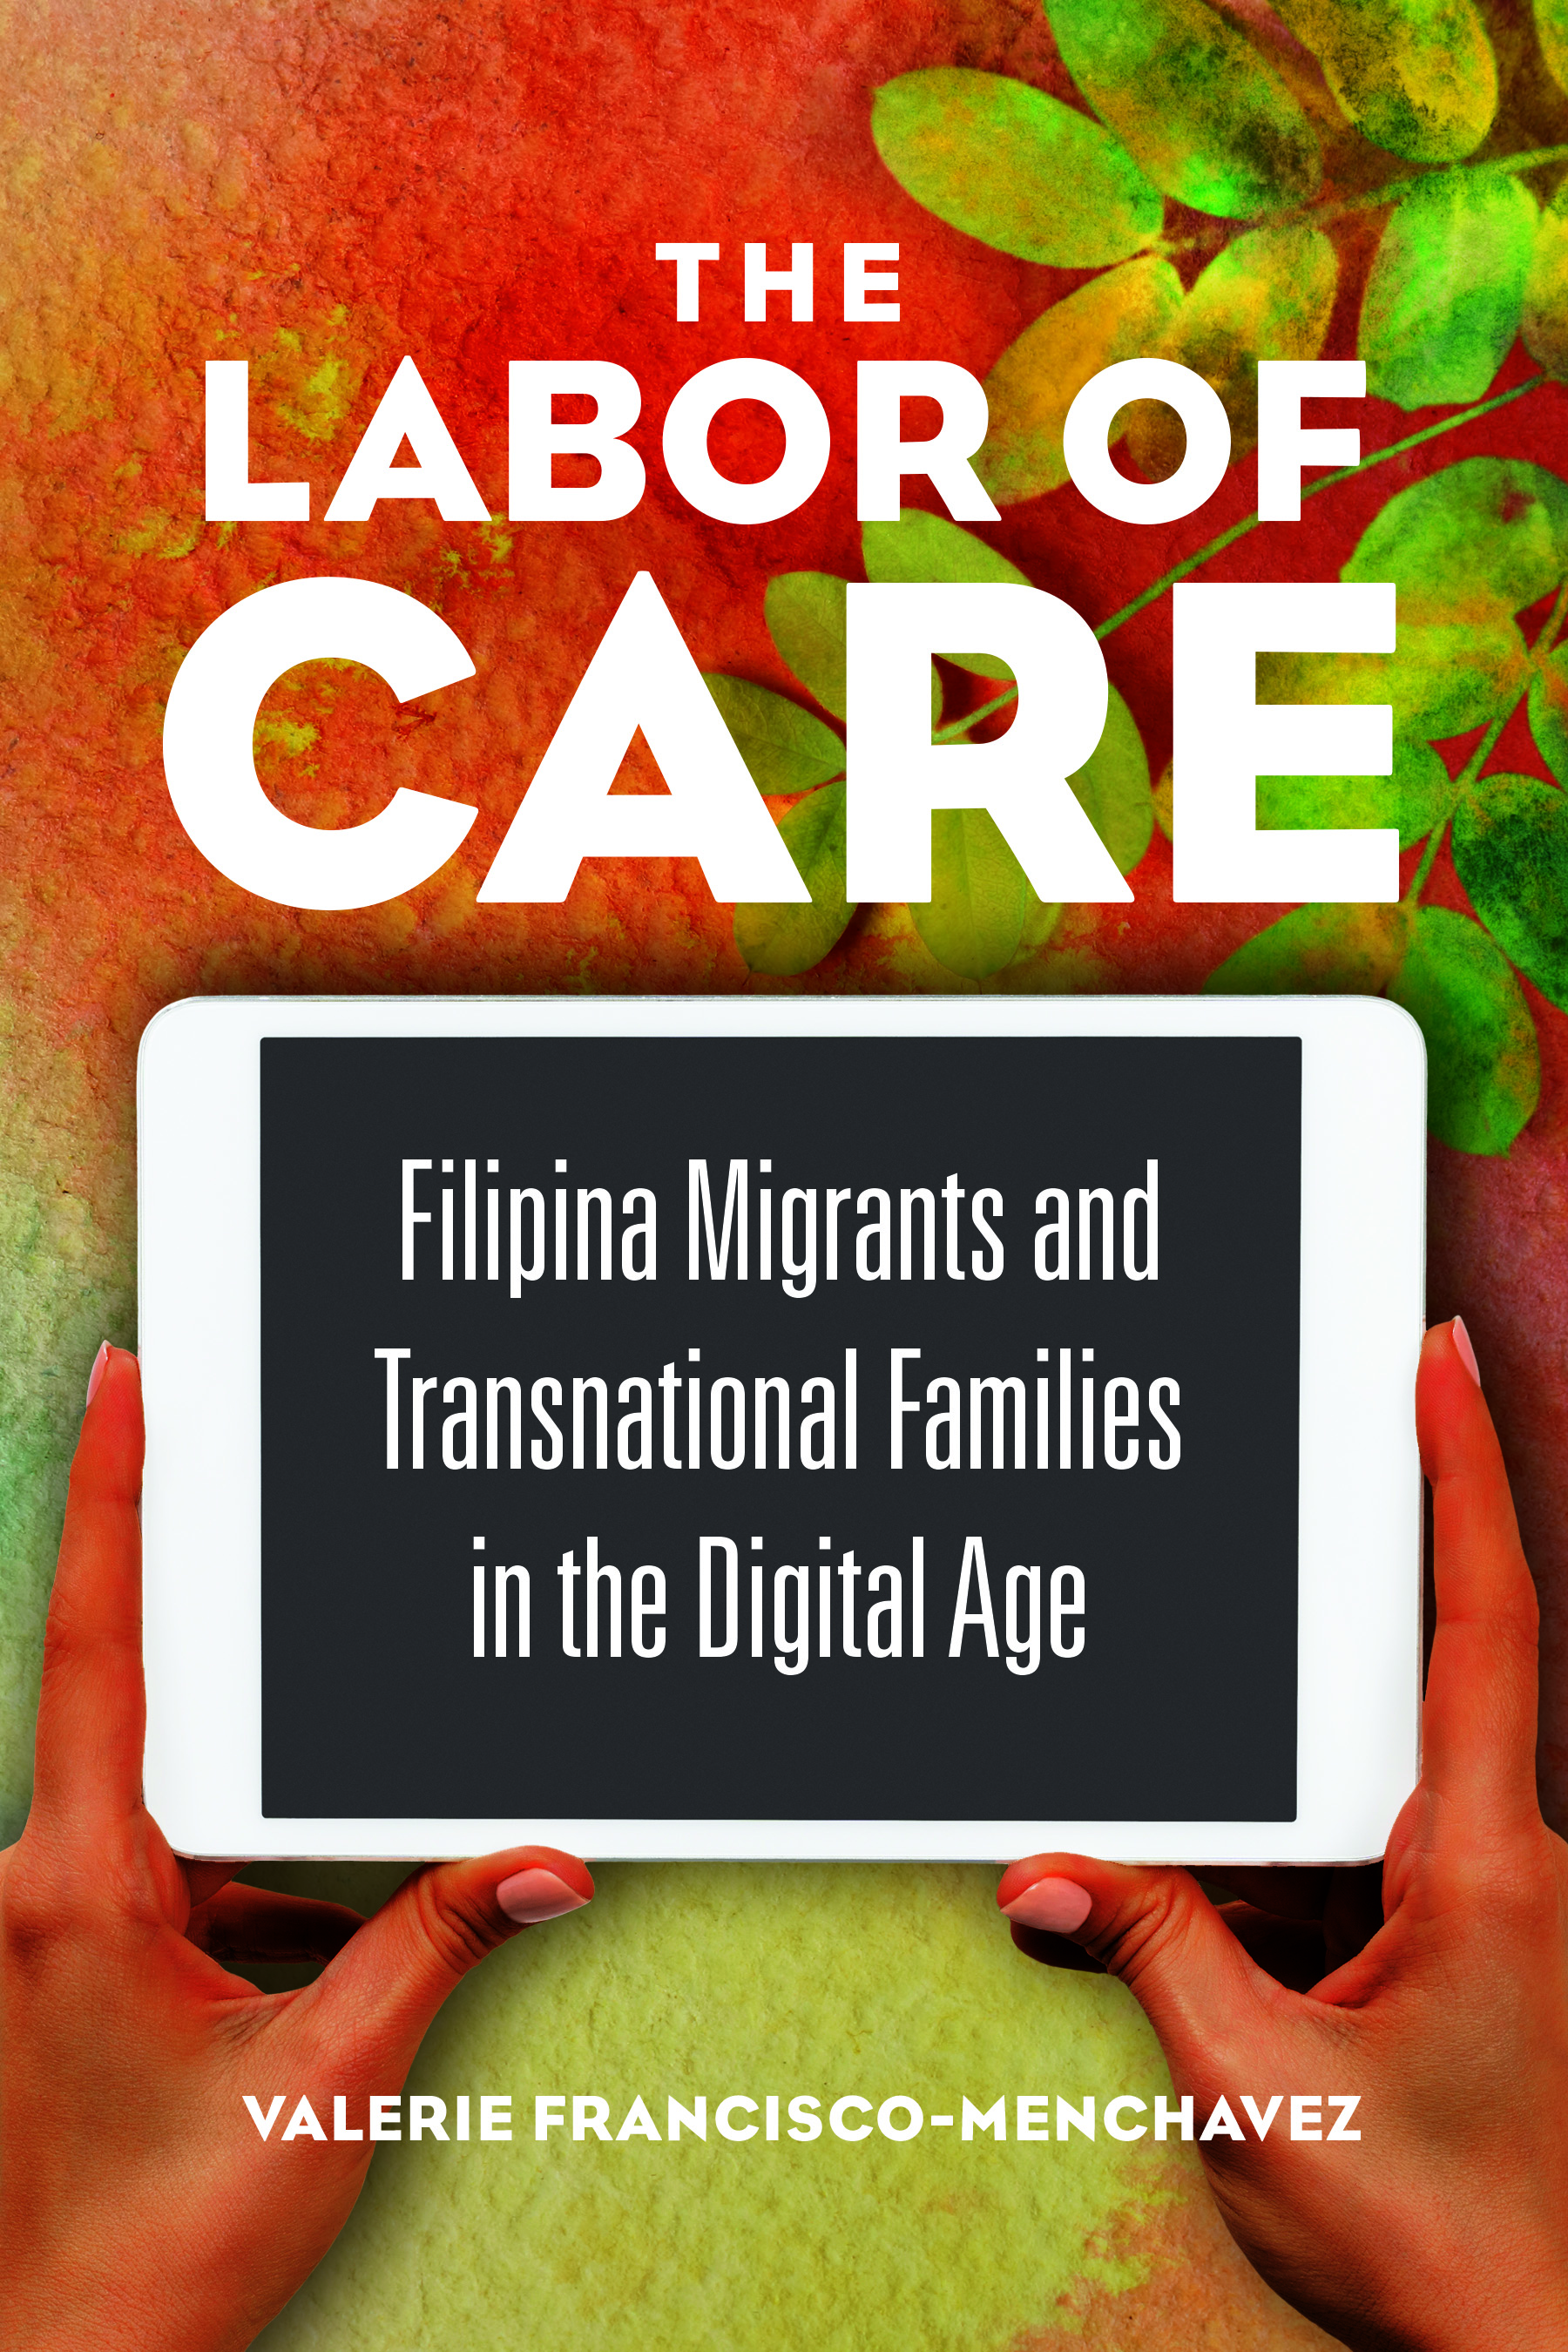 bit.ly/laborofcare